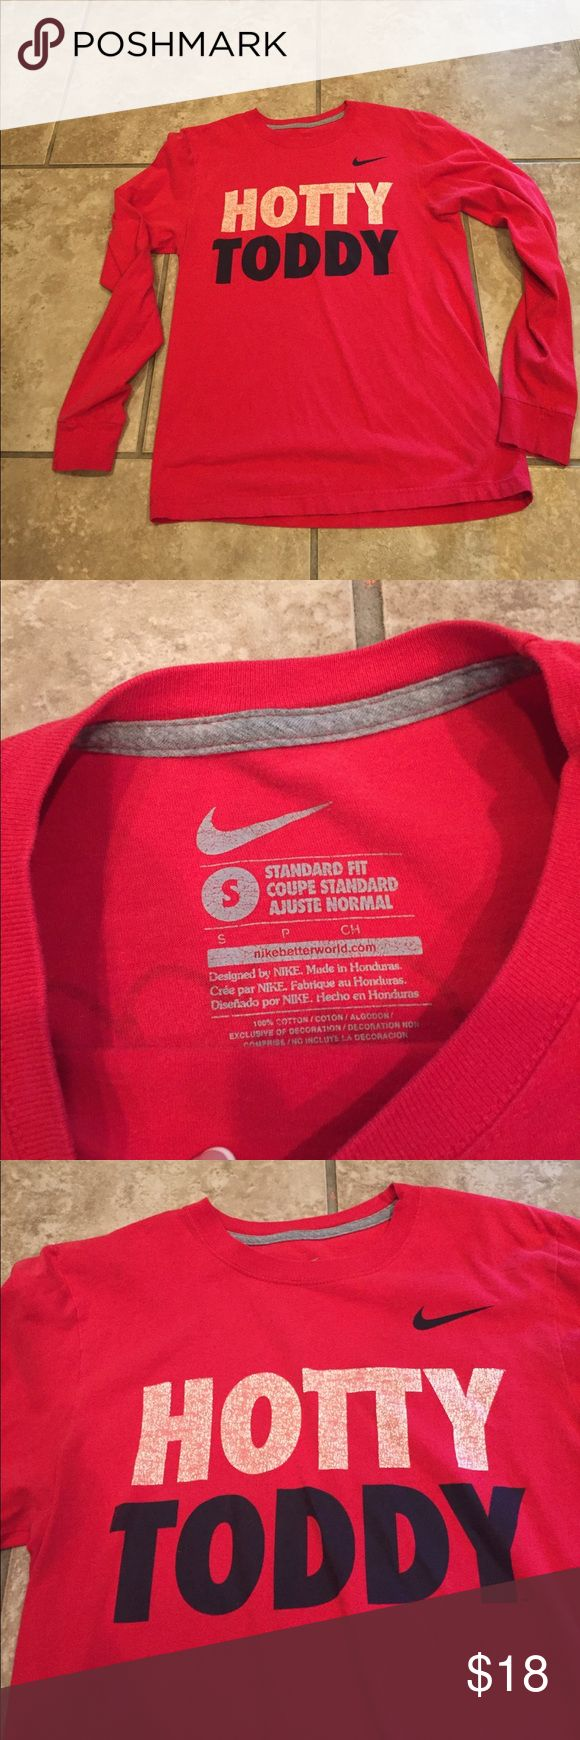 Nike Ole Miss Hotty Toddy tshirt SZ Small Good used condition Nike Tops Tees - Long Sleeve